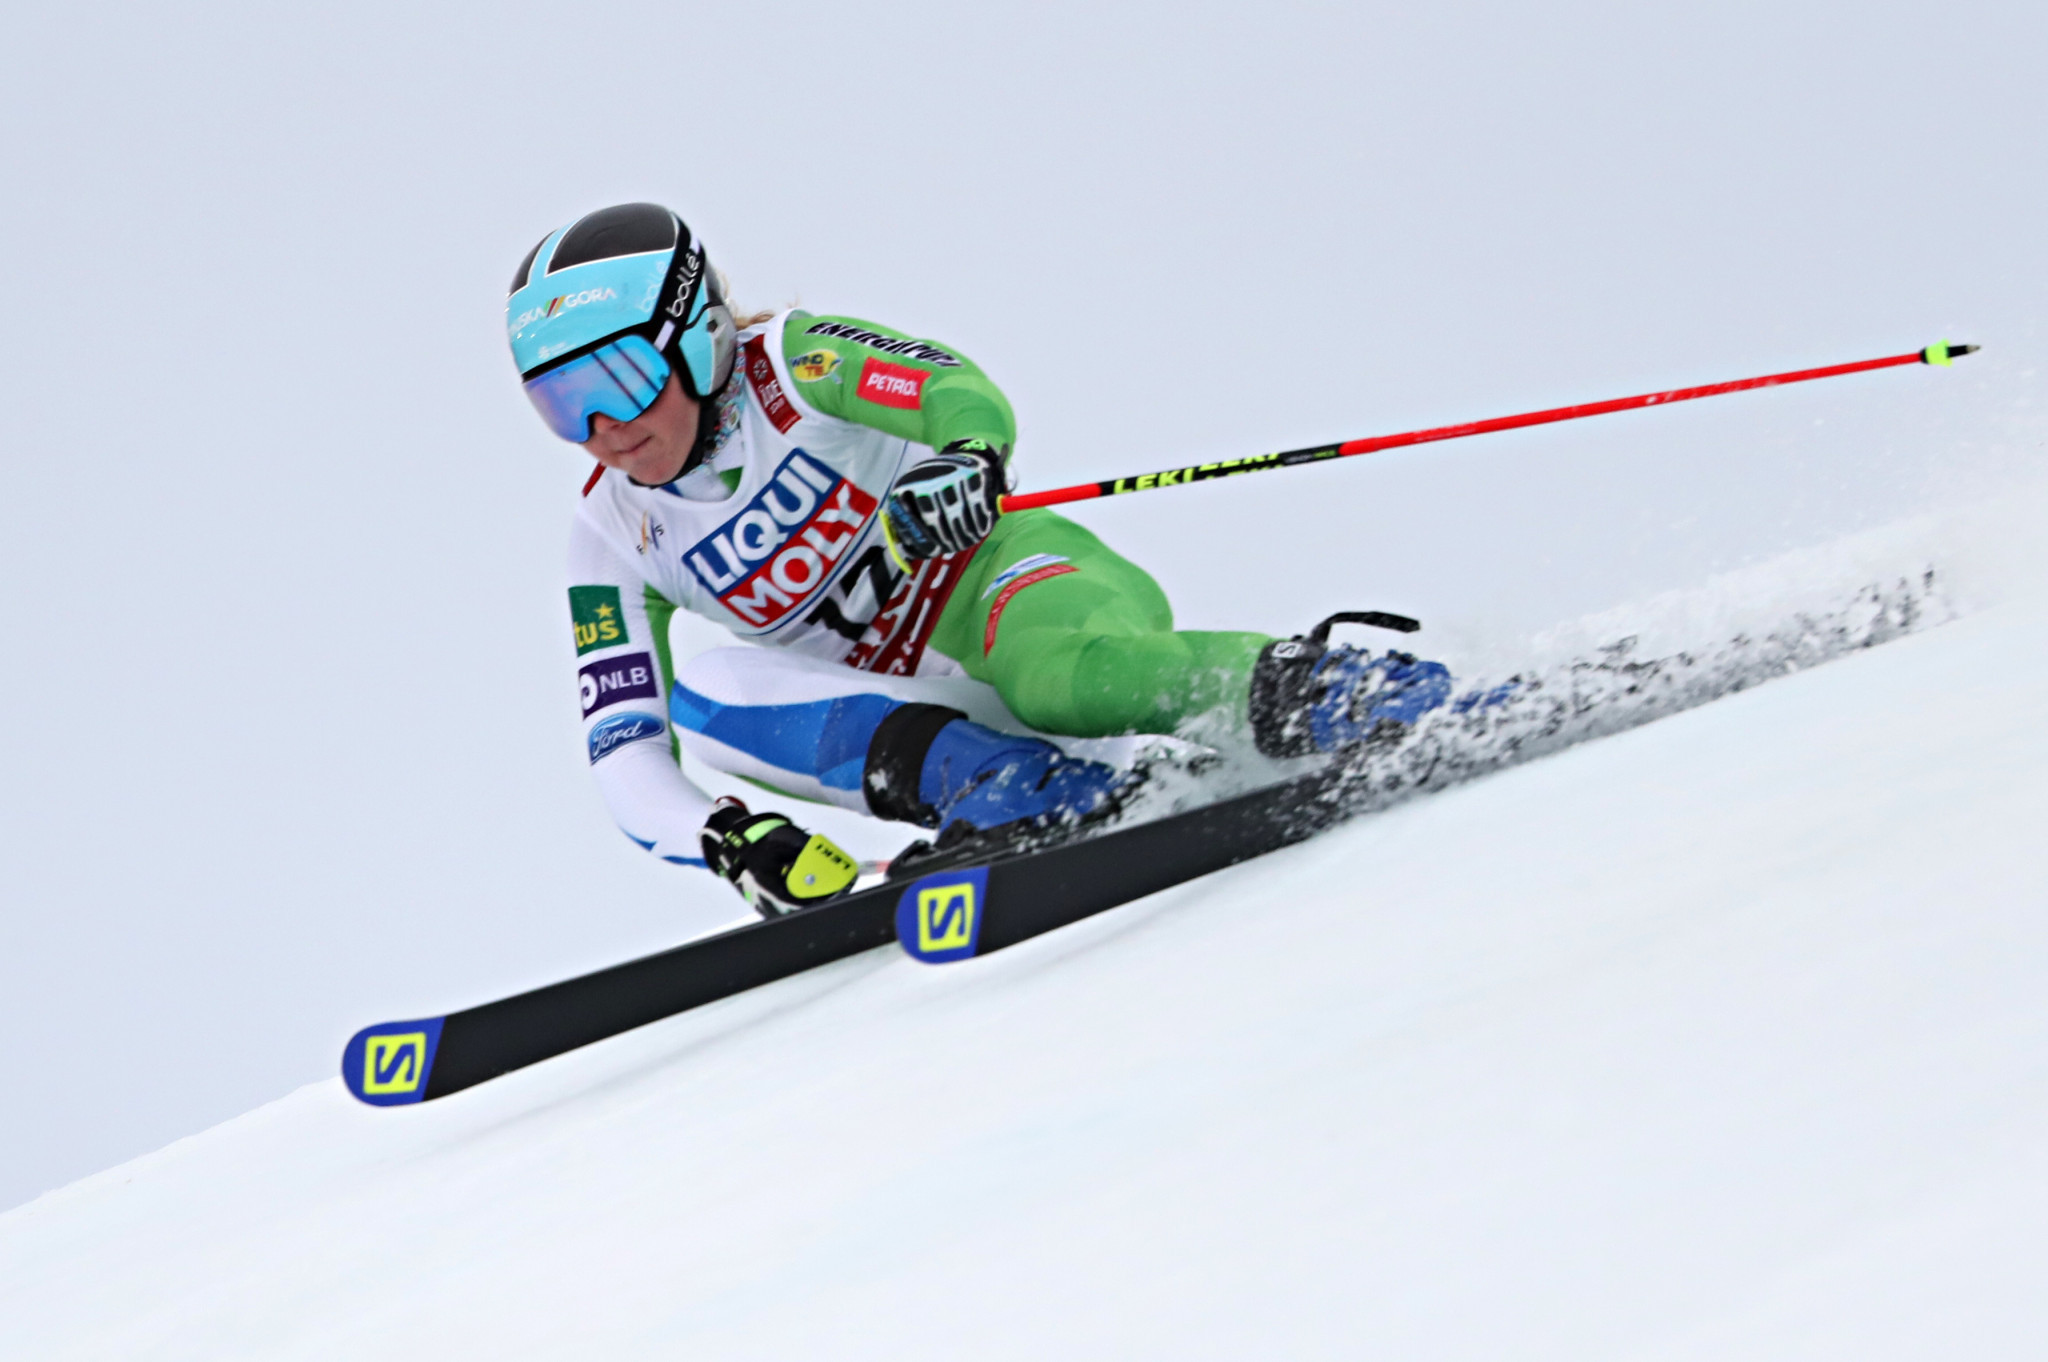 Slovenia's Meta Hrovat defended her title in the women's slalom at the World Junior Alpine Skiing Championships ©Getty Images